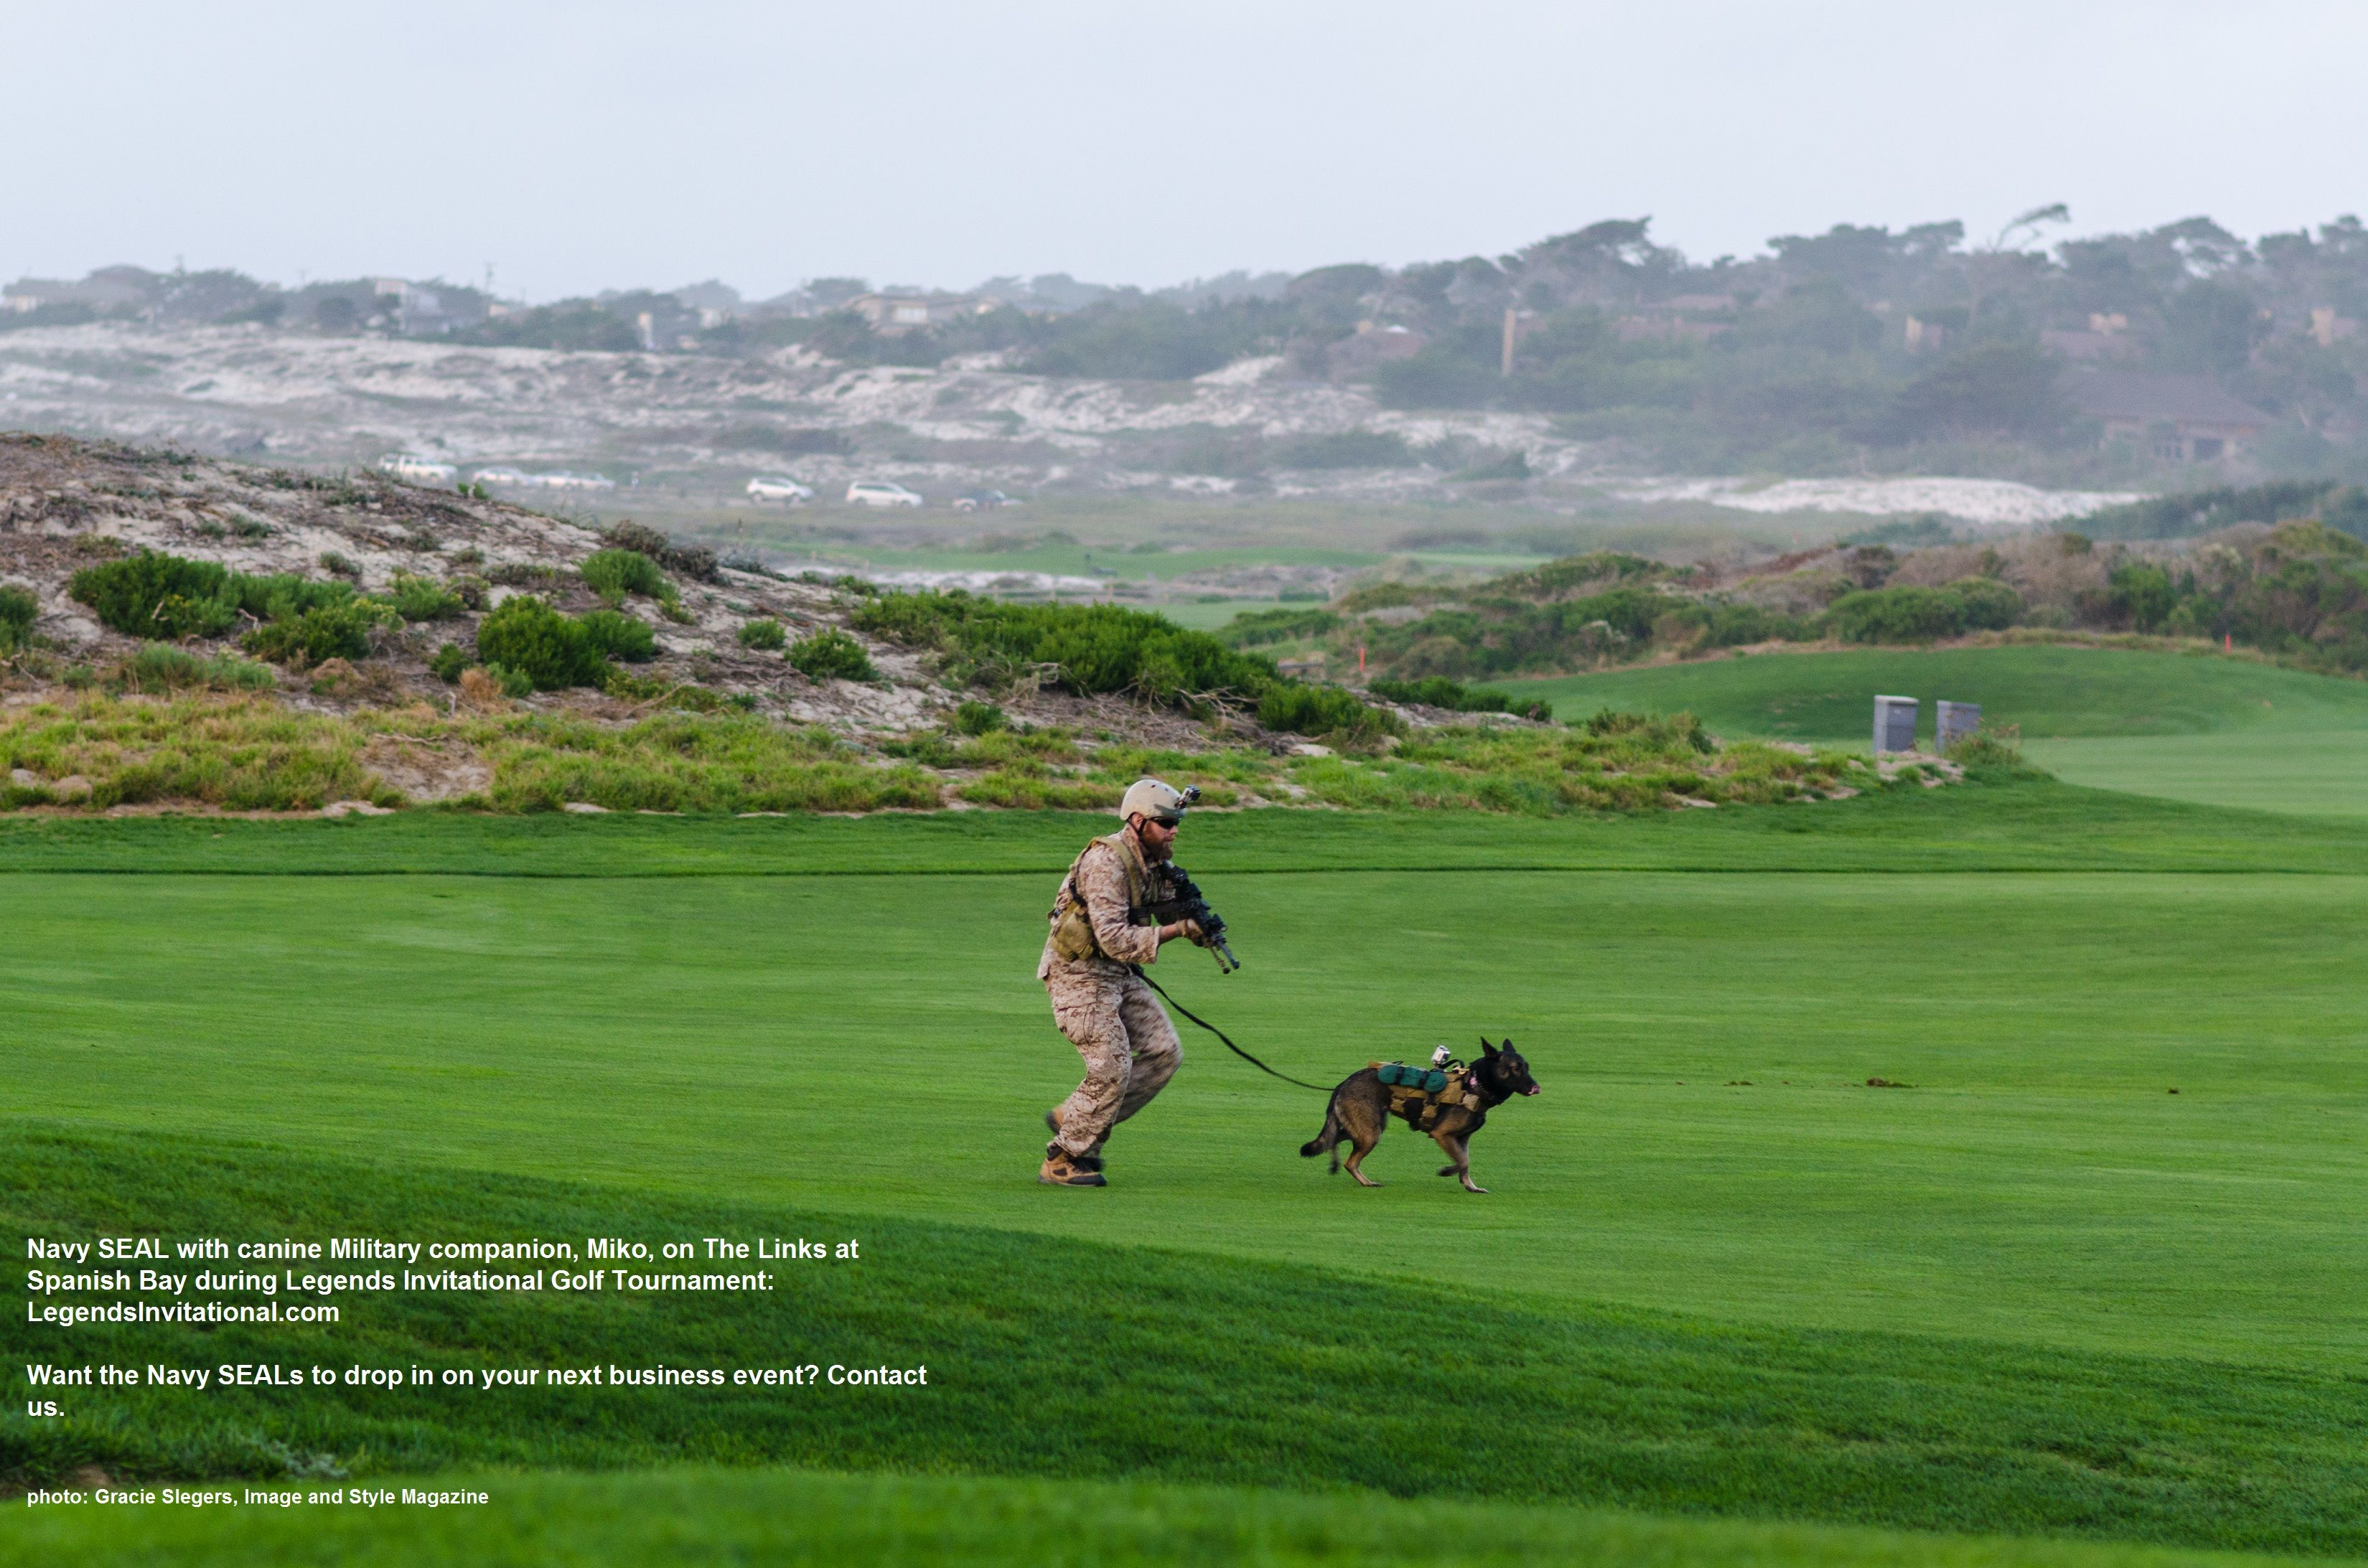 Only At Legends Invitational Can You Watch A Team Of Navy Seals Descend Upon The Links At Spanish Bay Golf Course Legendsinvitat Beach Golf Navy Seals Legend